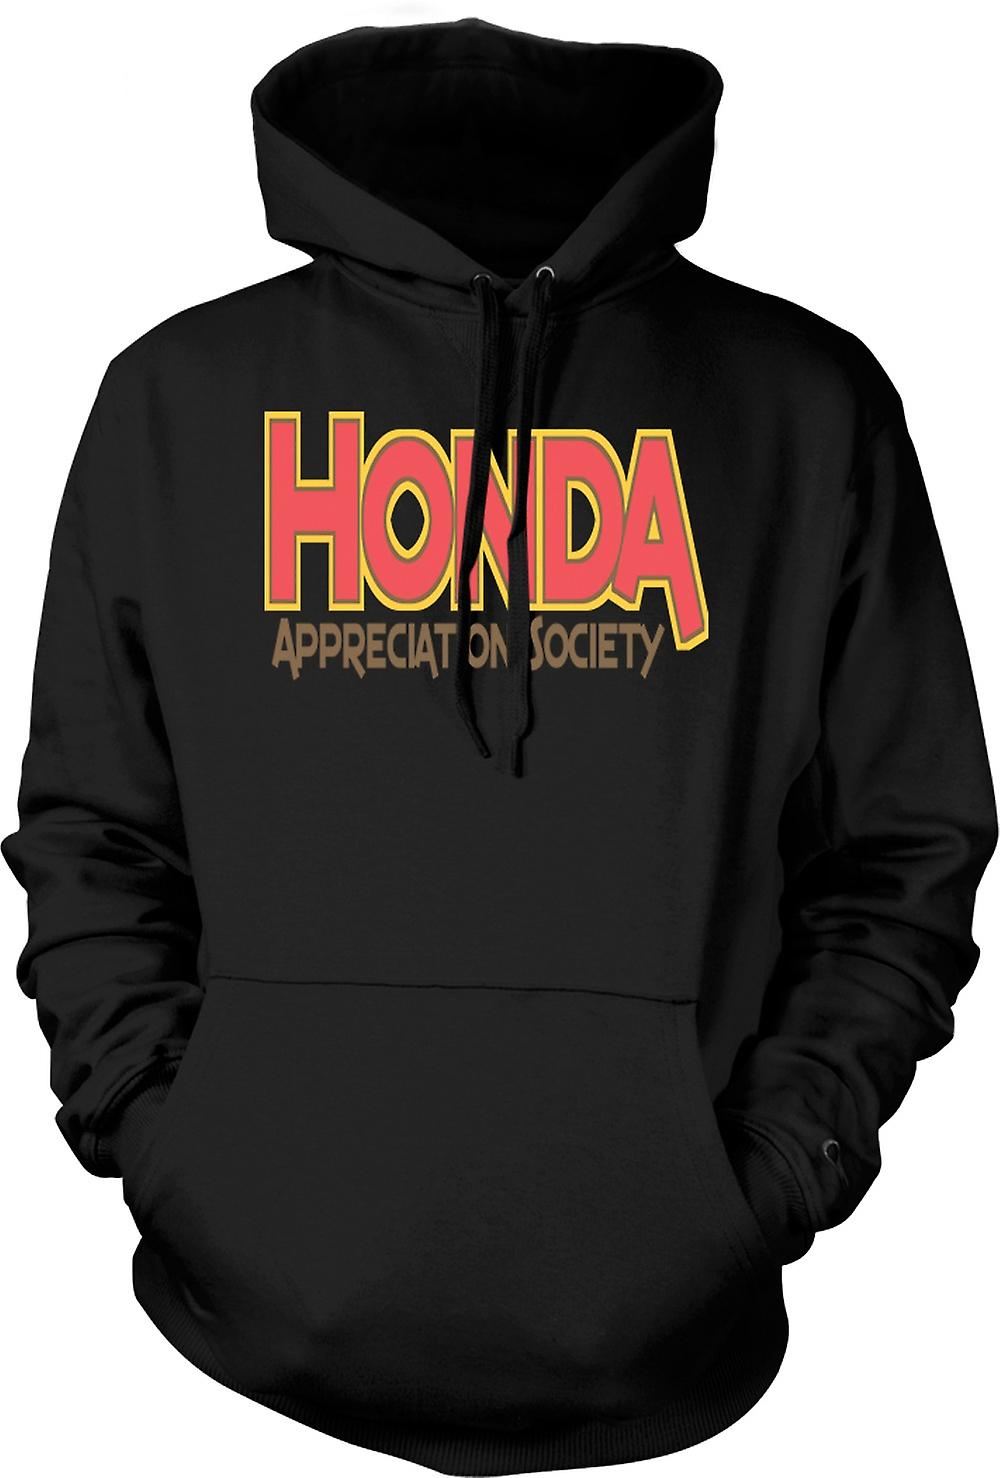 Mens Hoodie - Honda Appreciation Society